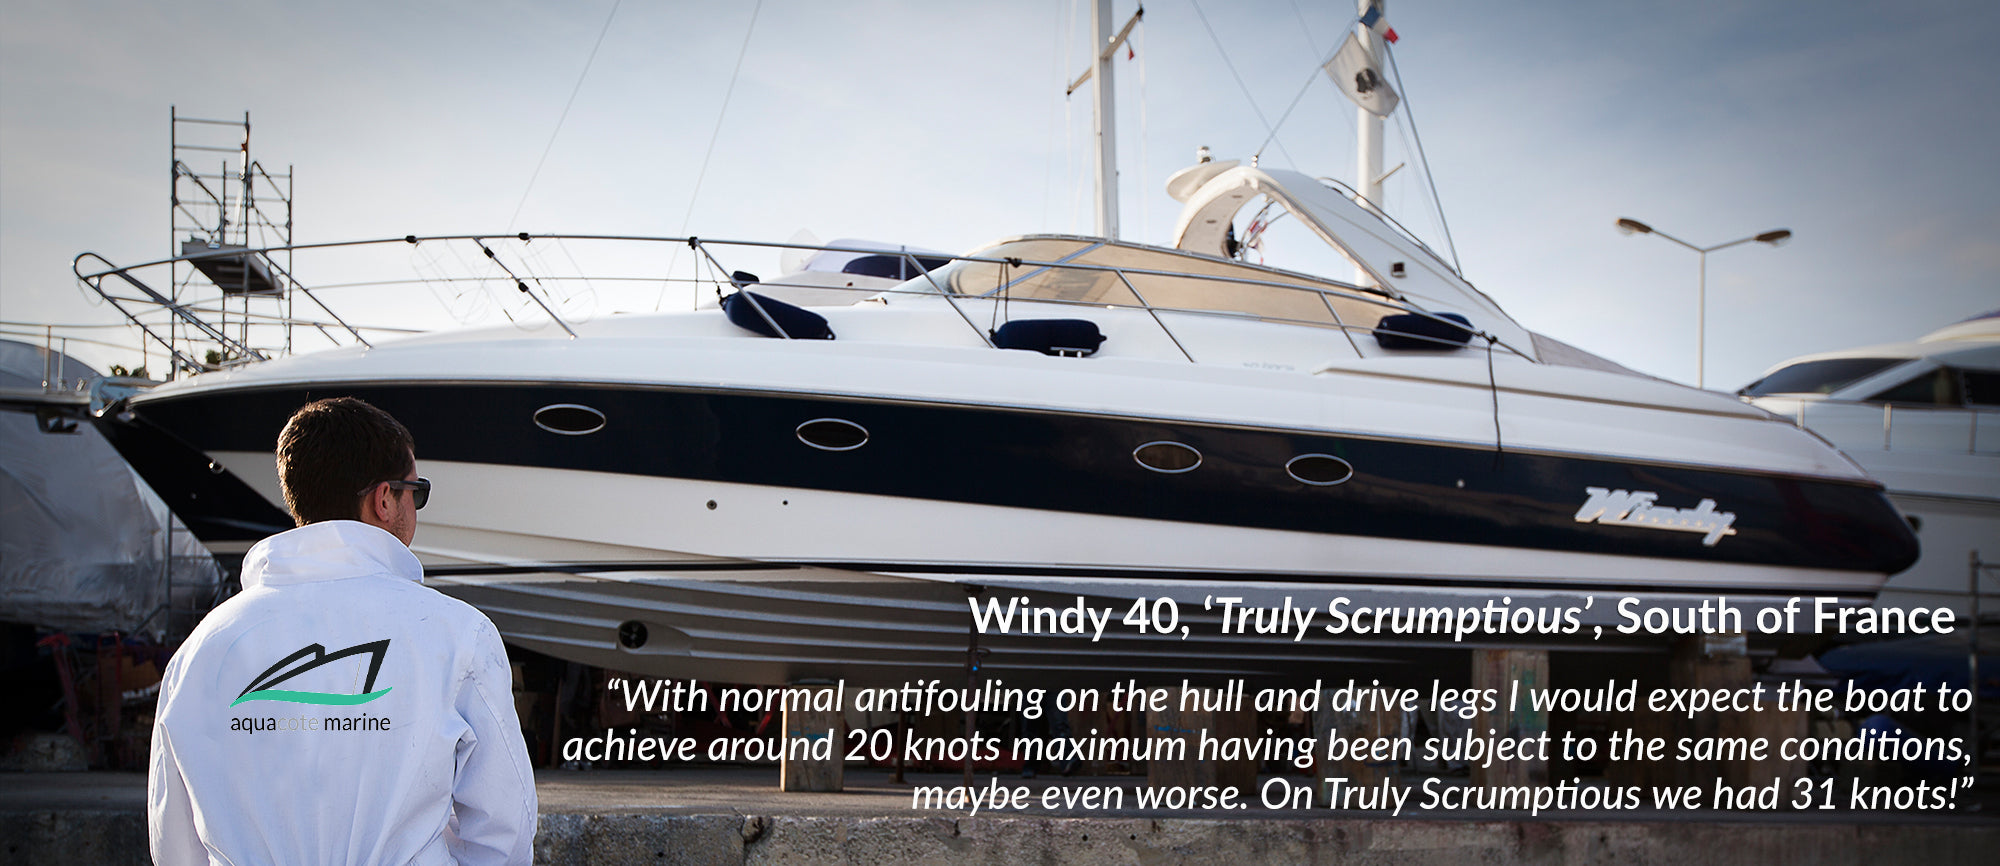 Windy 40 Performance Trials Foul Release Paints